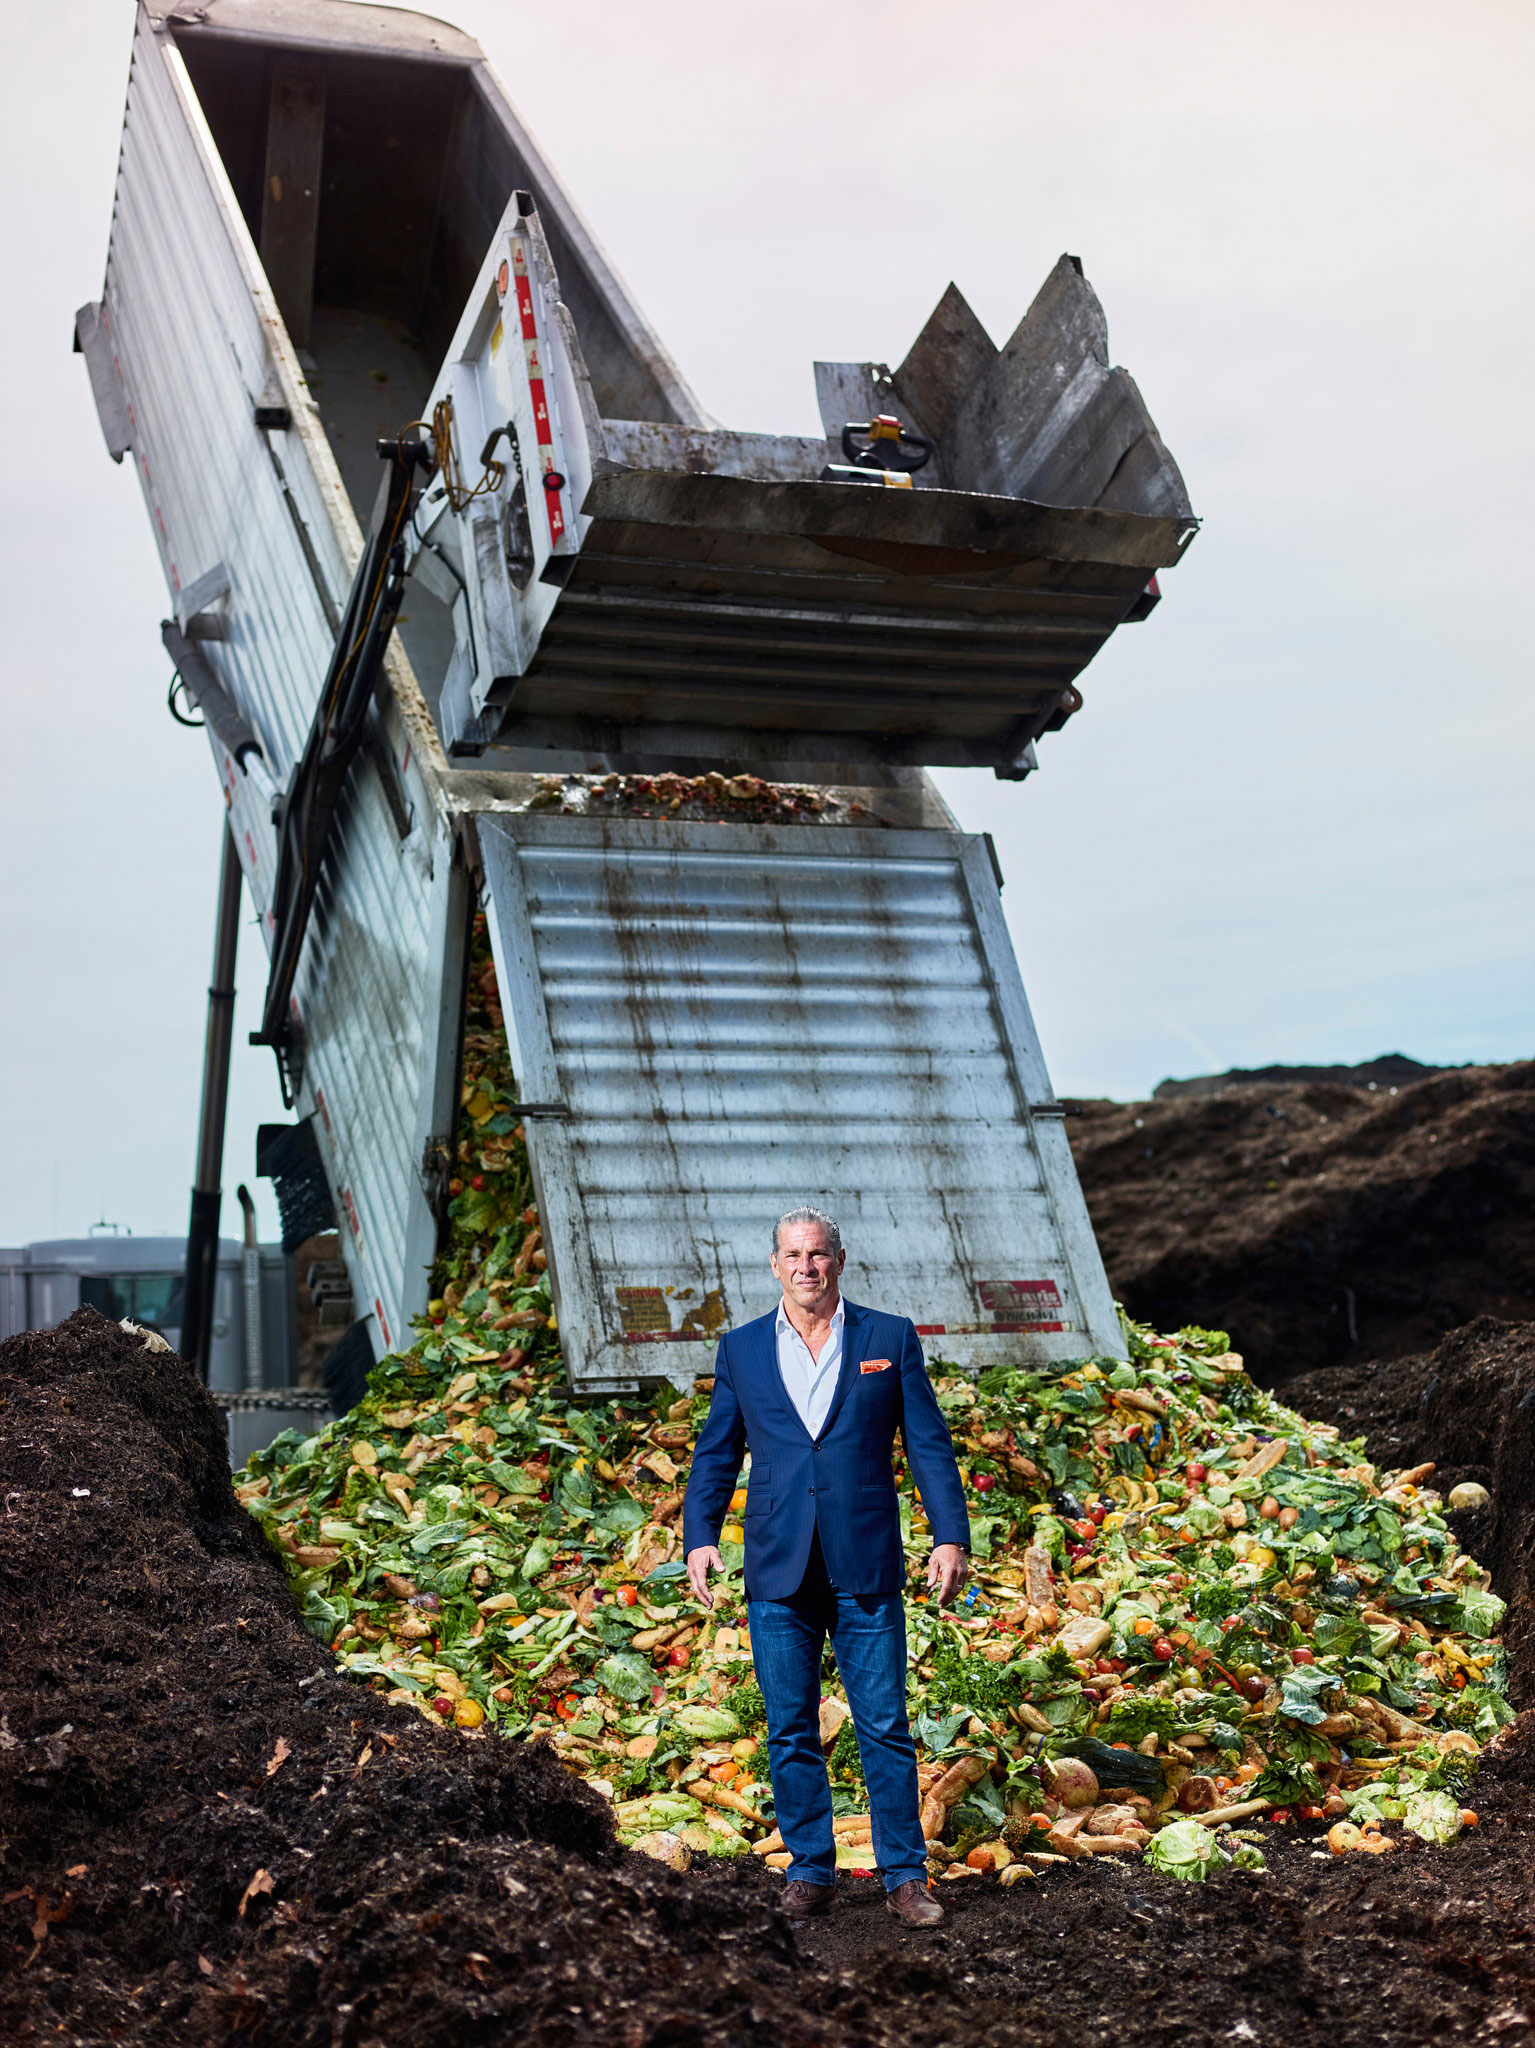 charles-vigliotti-in-front-of-compost